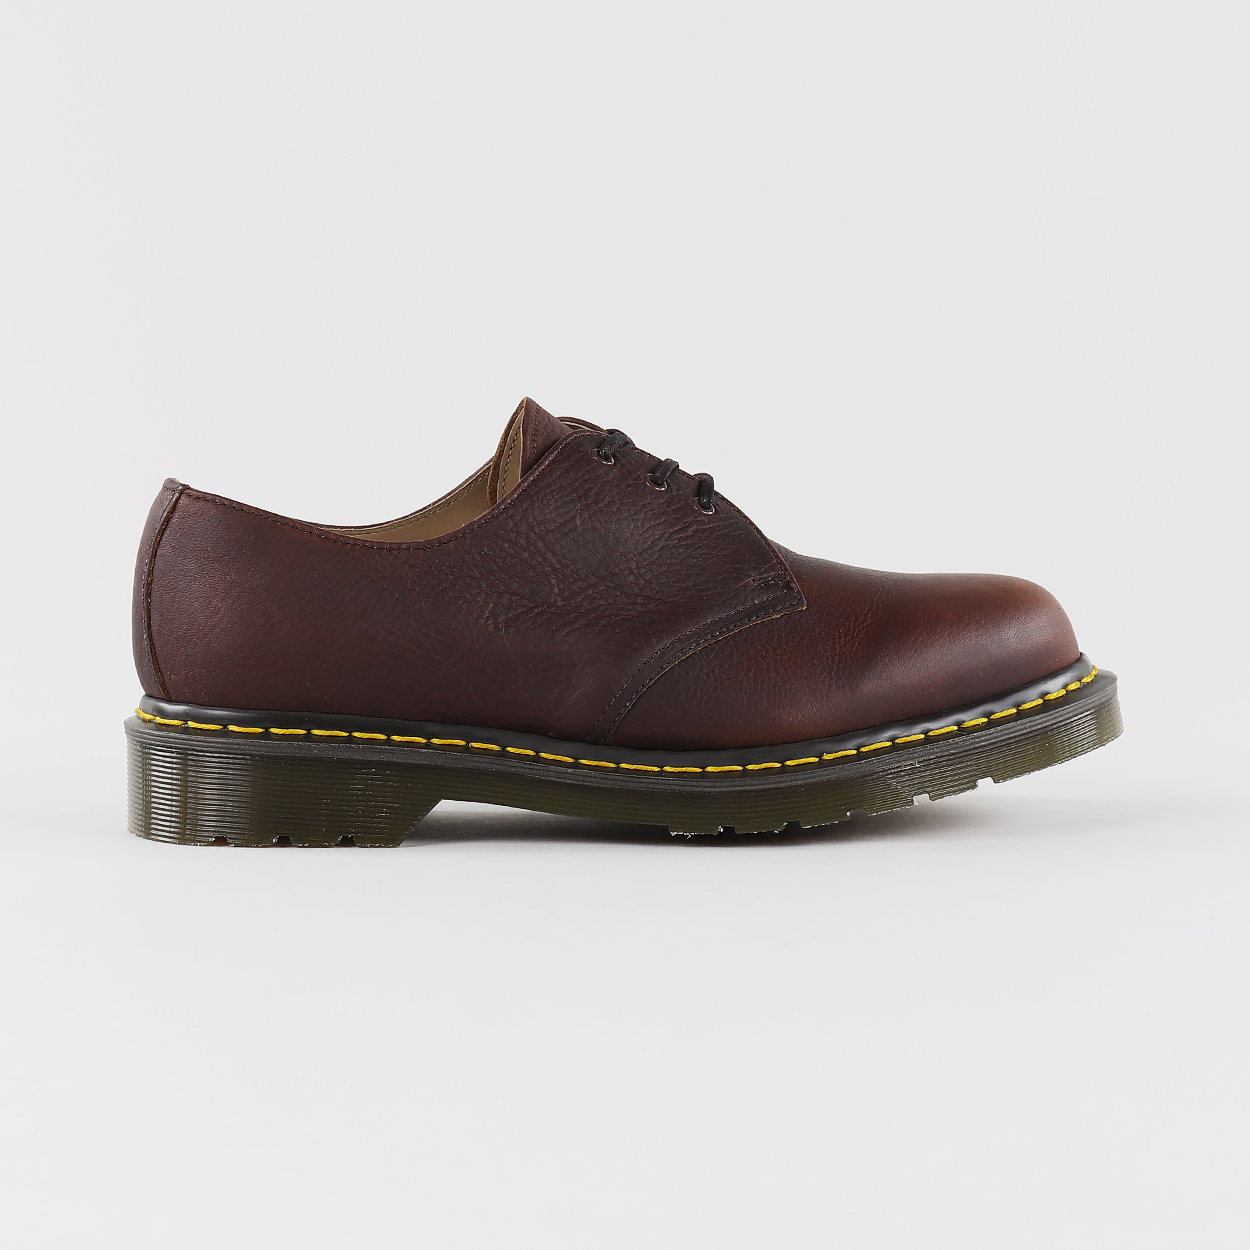 76722c8854b Dr Martens Made In England Mens 1461 Abandon Shoes Dark Tan Brown £155.00